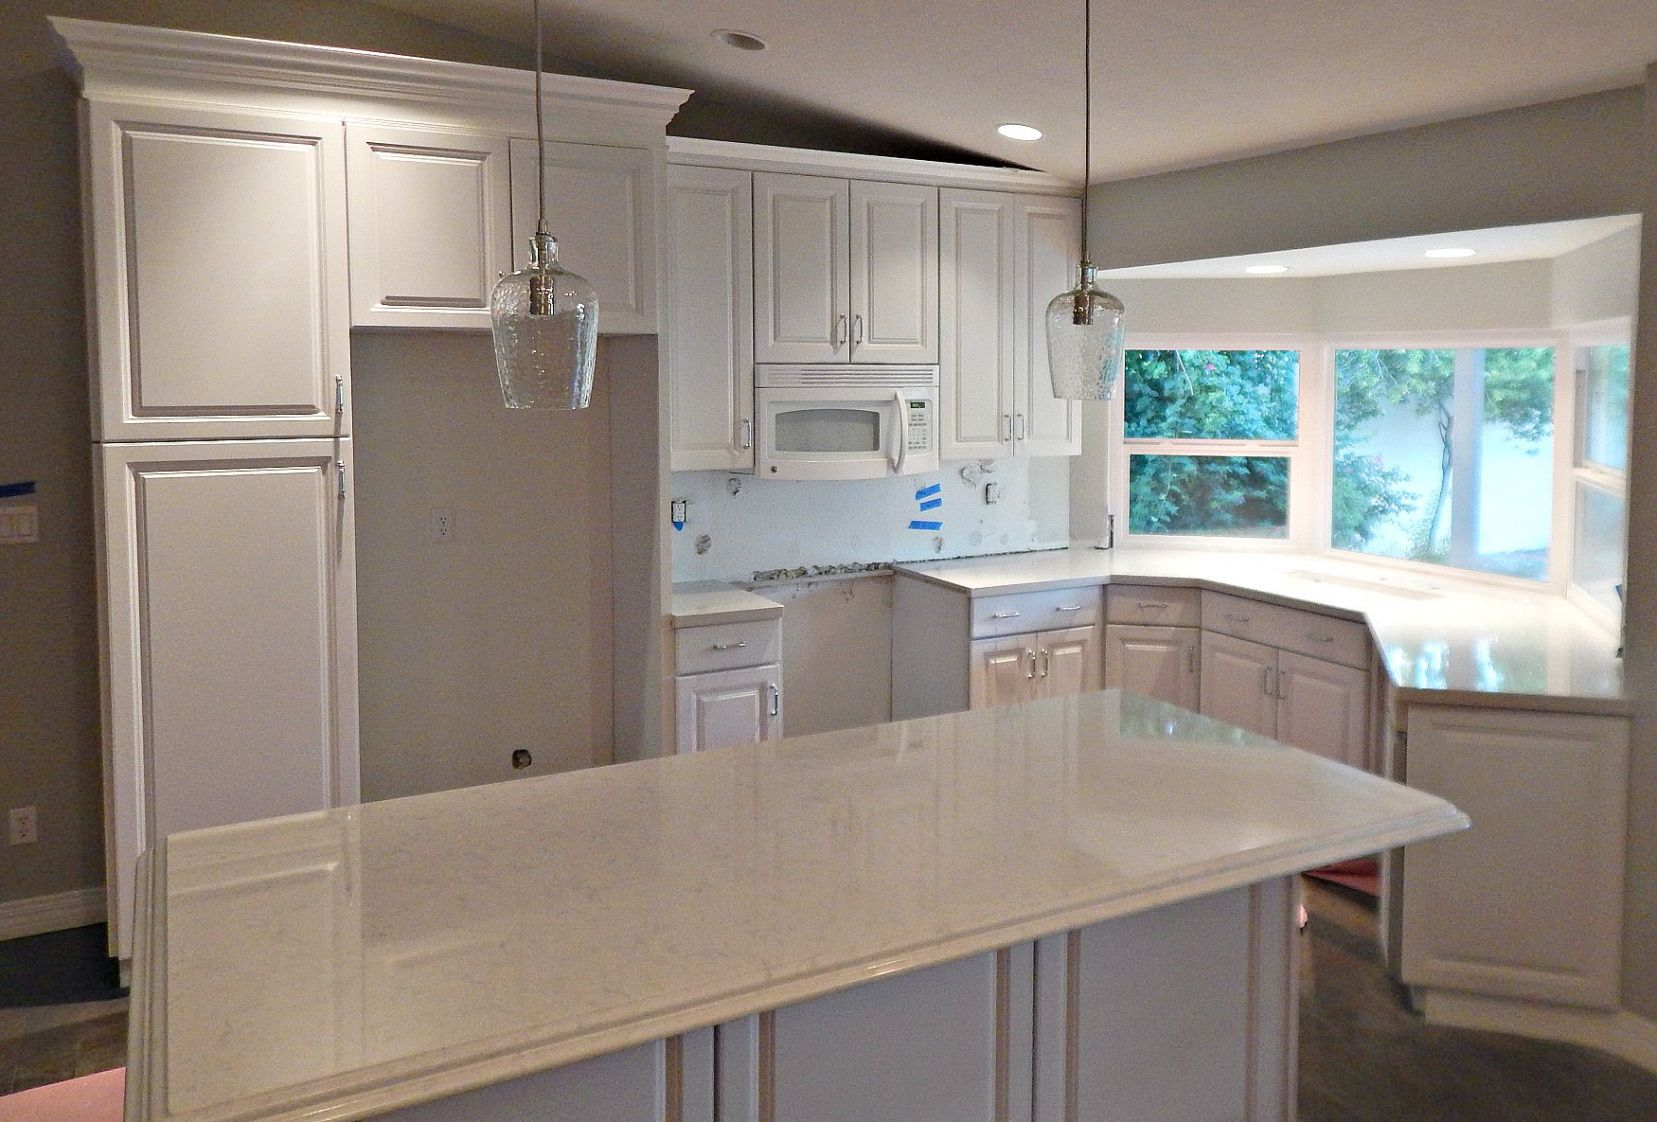 77+ How To Re Polish Granite Countertops   Small Kitchen Island Ideas With  Seating Check More At Http://mattinglybrewing.com/2019 How To Re Polish U2026